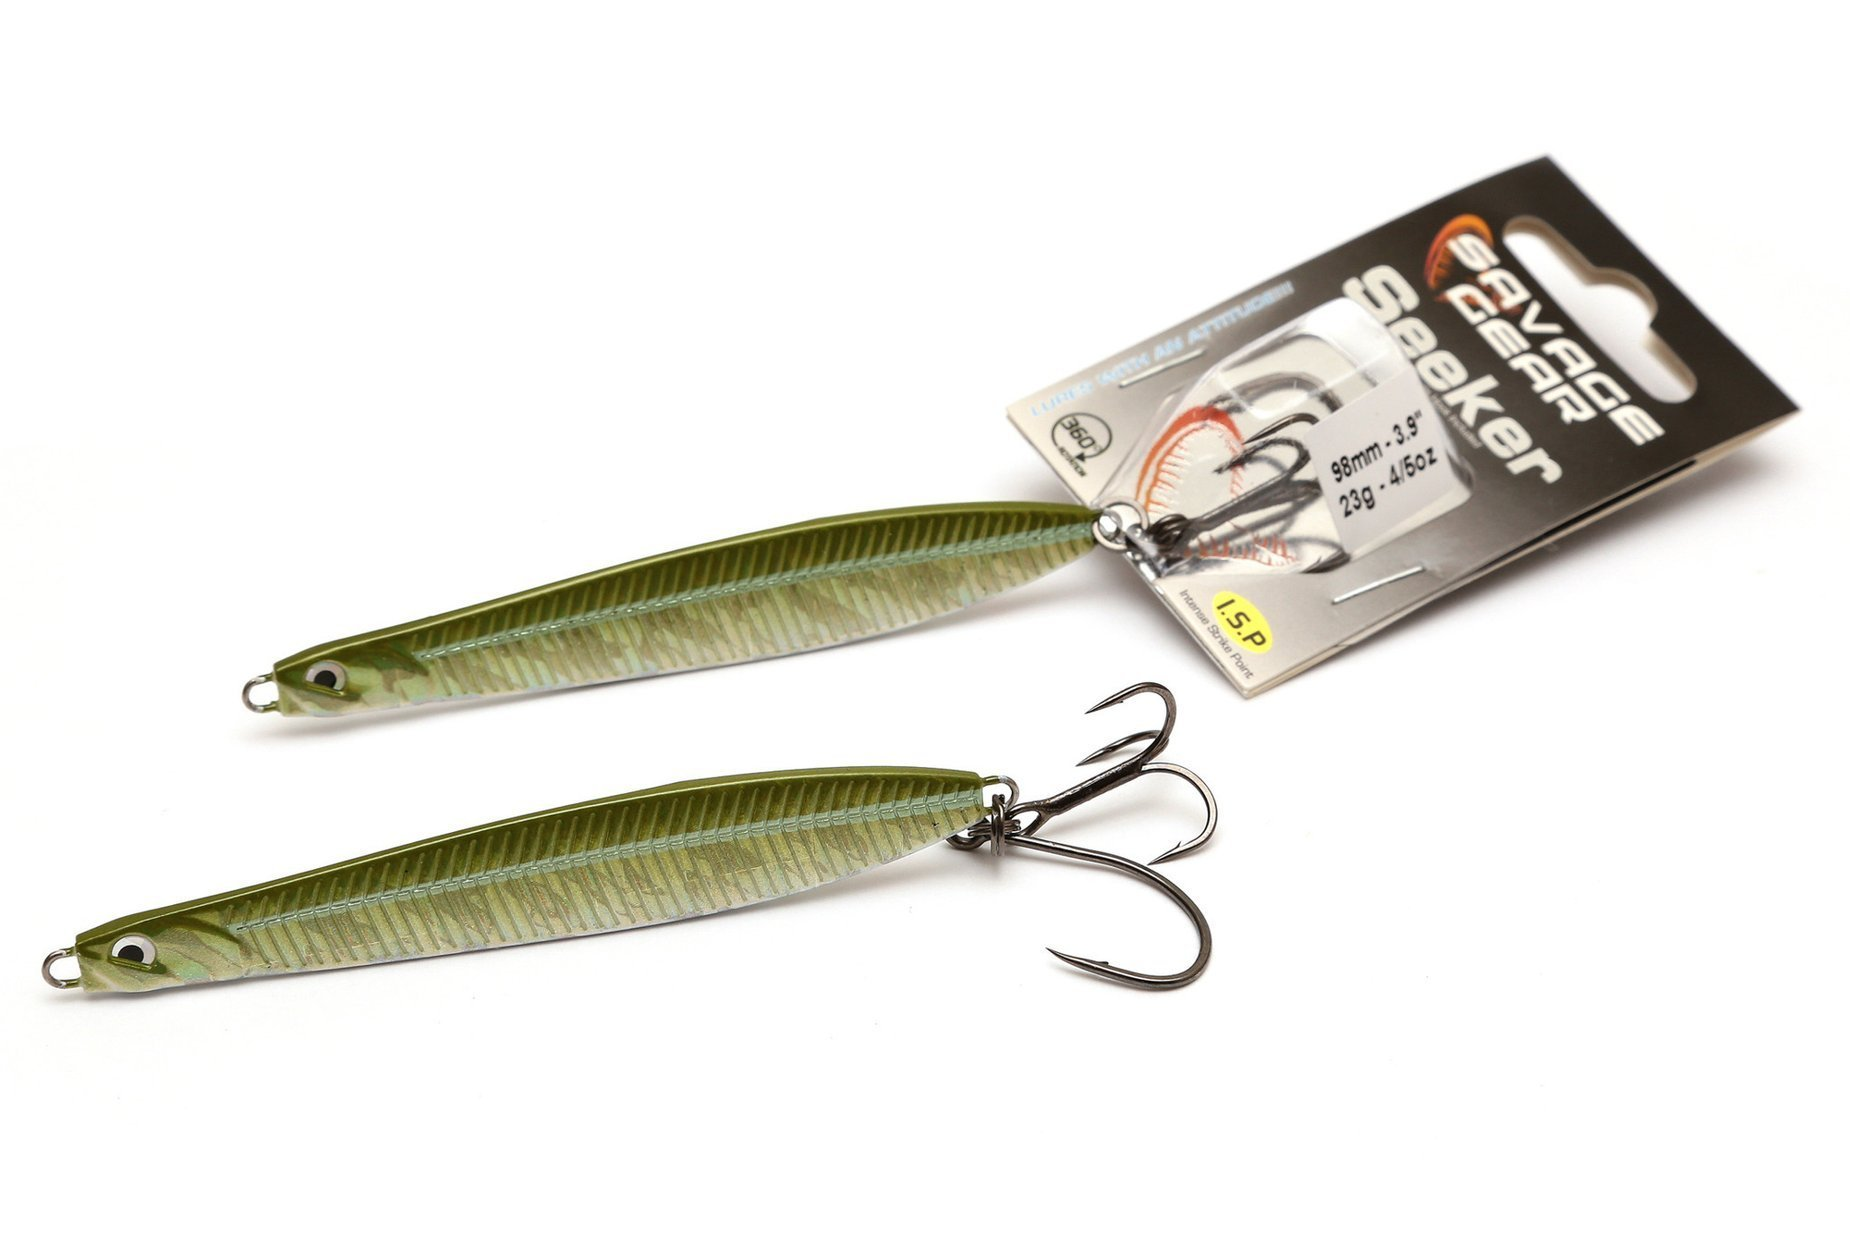 Savage Gear Seeker Isp - Green Silver 6.8cm 28g